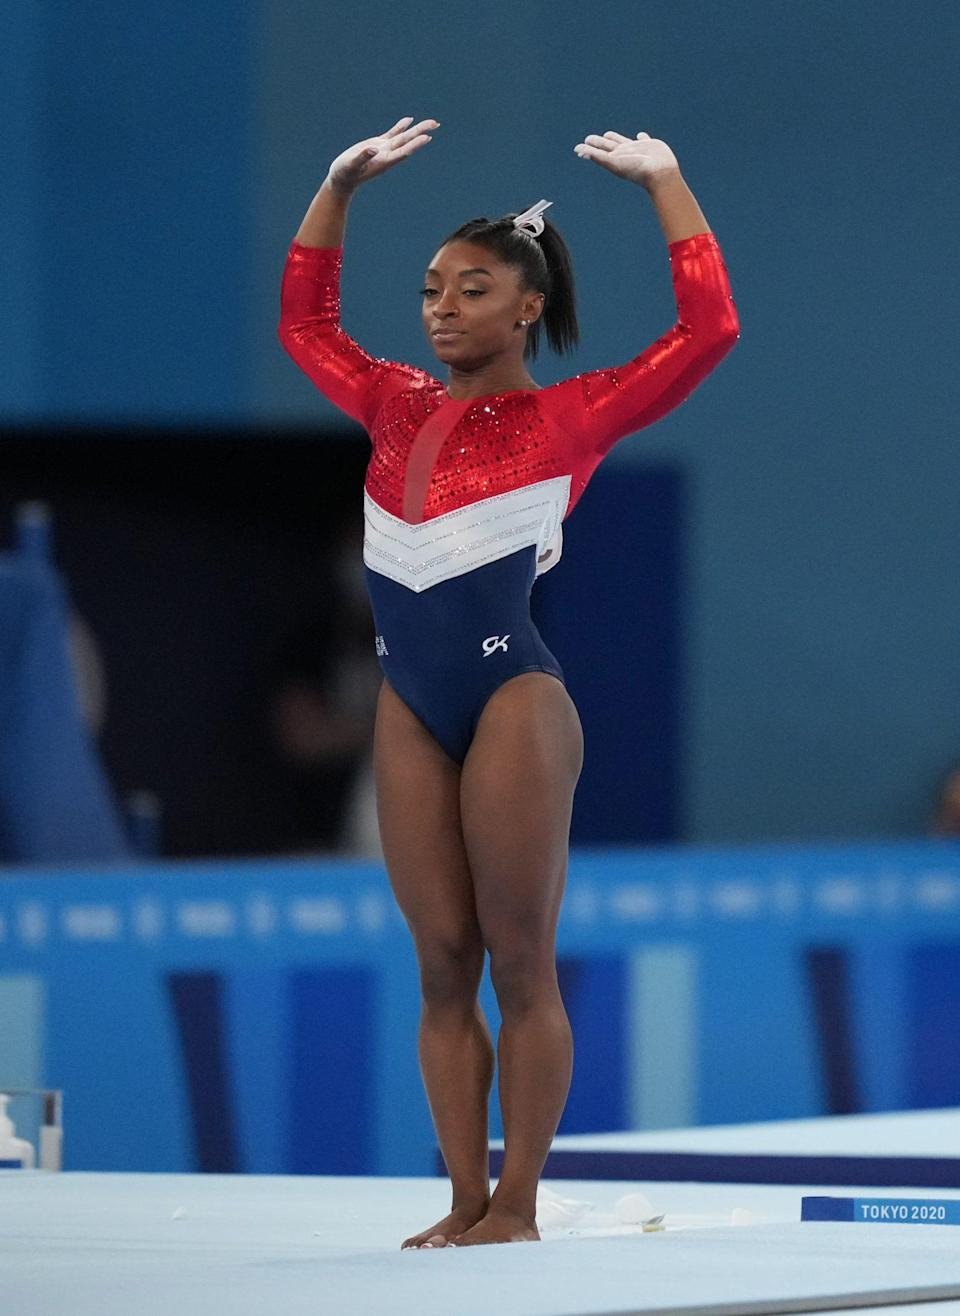 <p>On July 27, Biles unexpectedly bowed out of the women's gymnastics team all-around final after her first apparatus.</p> <p>In her opening rotation on vault, the star opted out of an expected Amanar mid-air, chose a Yurchenko one-and-a-half twist instead, and made a large hop forward on her landing.</p> <p>Afterward, Biles — who was originally set to compete on bars in the second rotation — surprised everyone by walking off the competition floor with her coach Cecile Canqueteau-Landi. Biles would return to the floor a few minutes later, without grips. She then put on her warmup ensemble.</p> <p>She was replaced by Chiles, who had mere minutes of a warning. For the three remaining apparatuses, Biles was seen cheering and supporting her teammates after telling them that she would not be moving forward in the competition.</p>